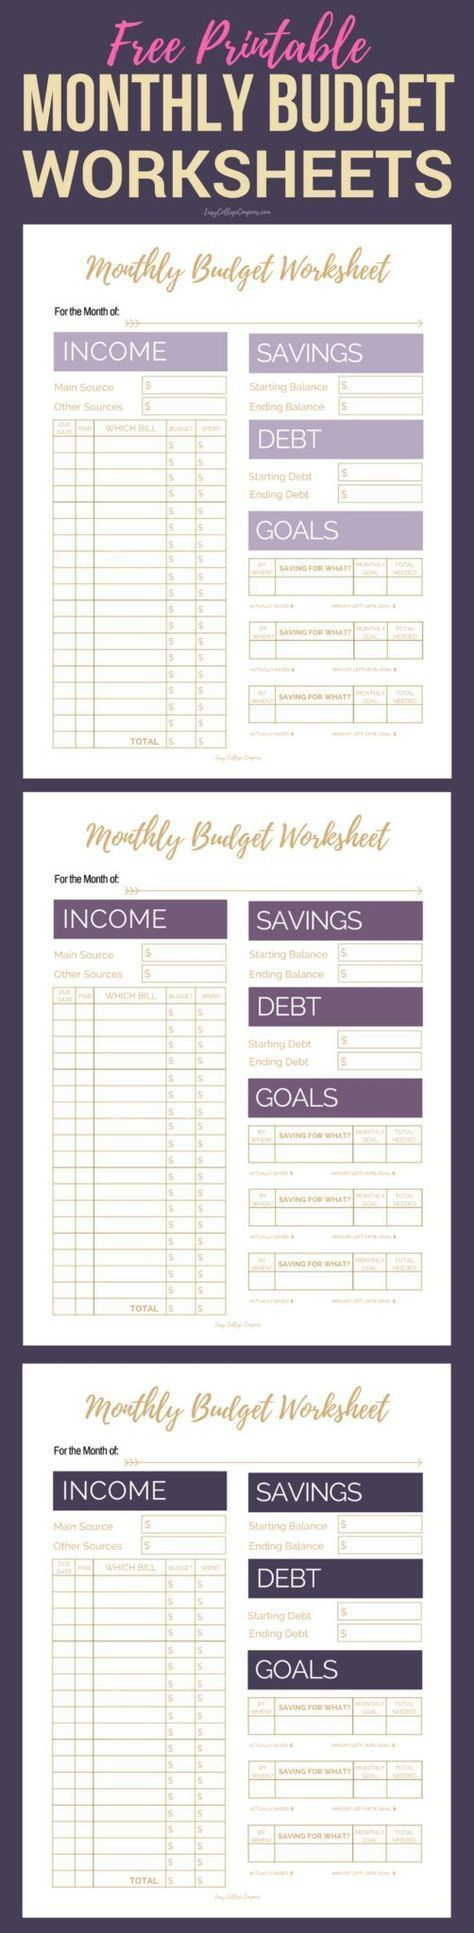 Free Printable Monthly Budget Worksheets  Printable Budget